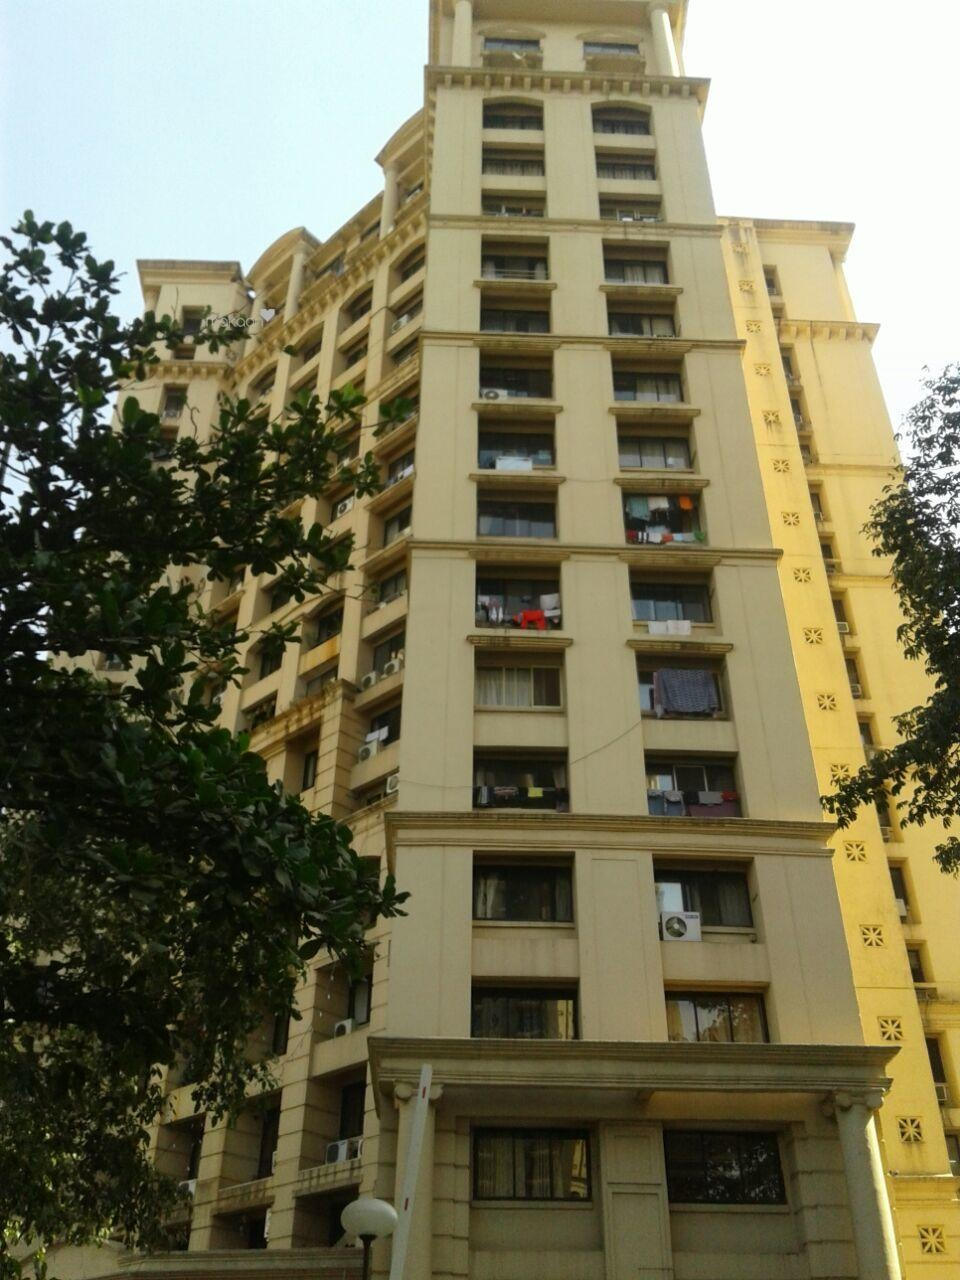 1500 sq ft 3BHK 3BHK+3T (1,500 sq ft) Property By Shreedham Consultancy In Westend Raheja Vihar, Chandivali